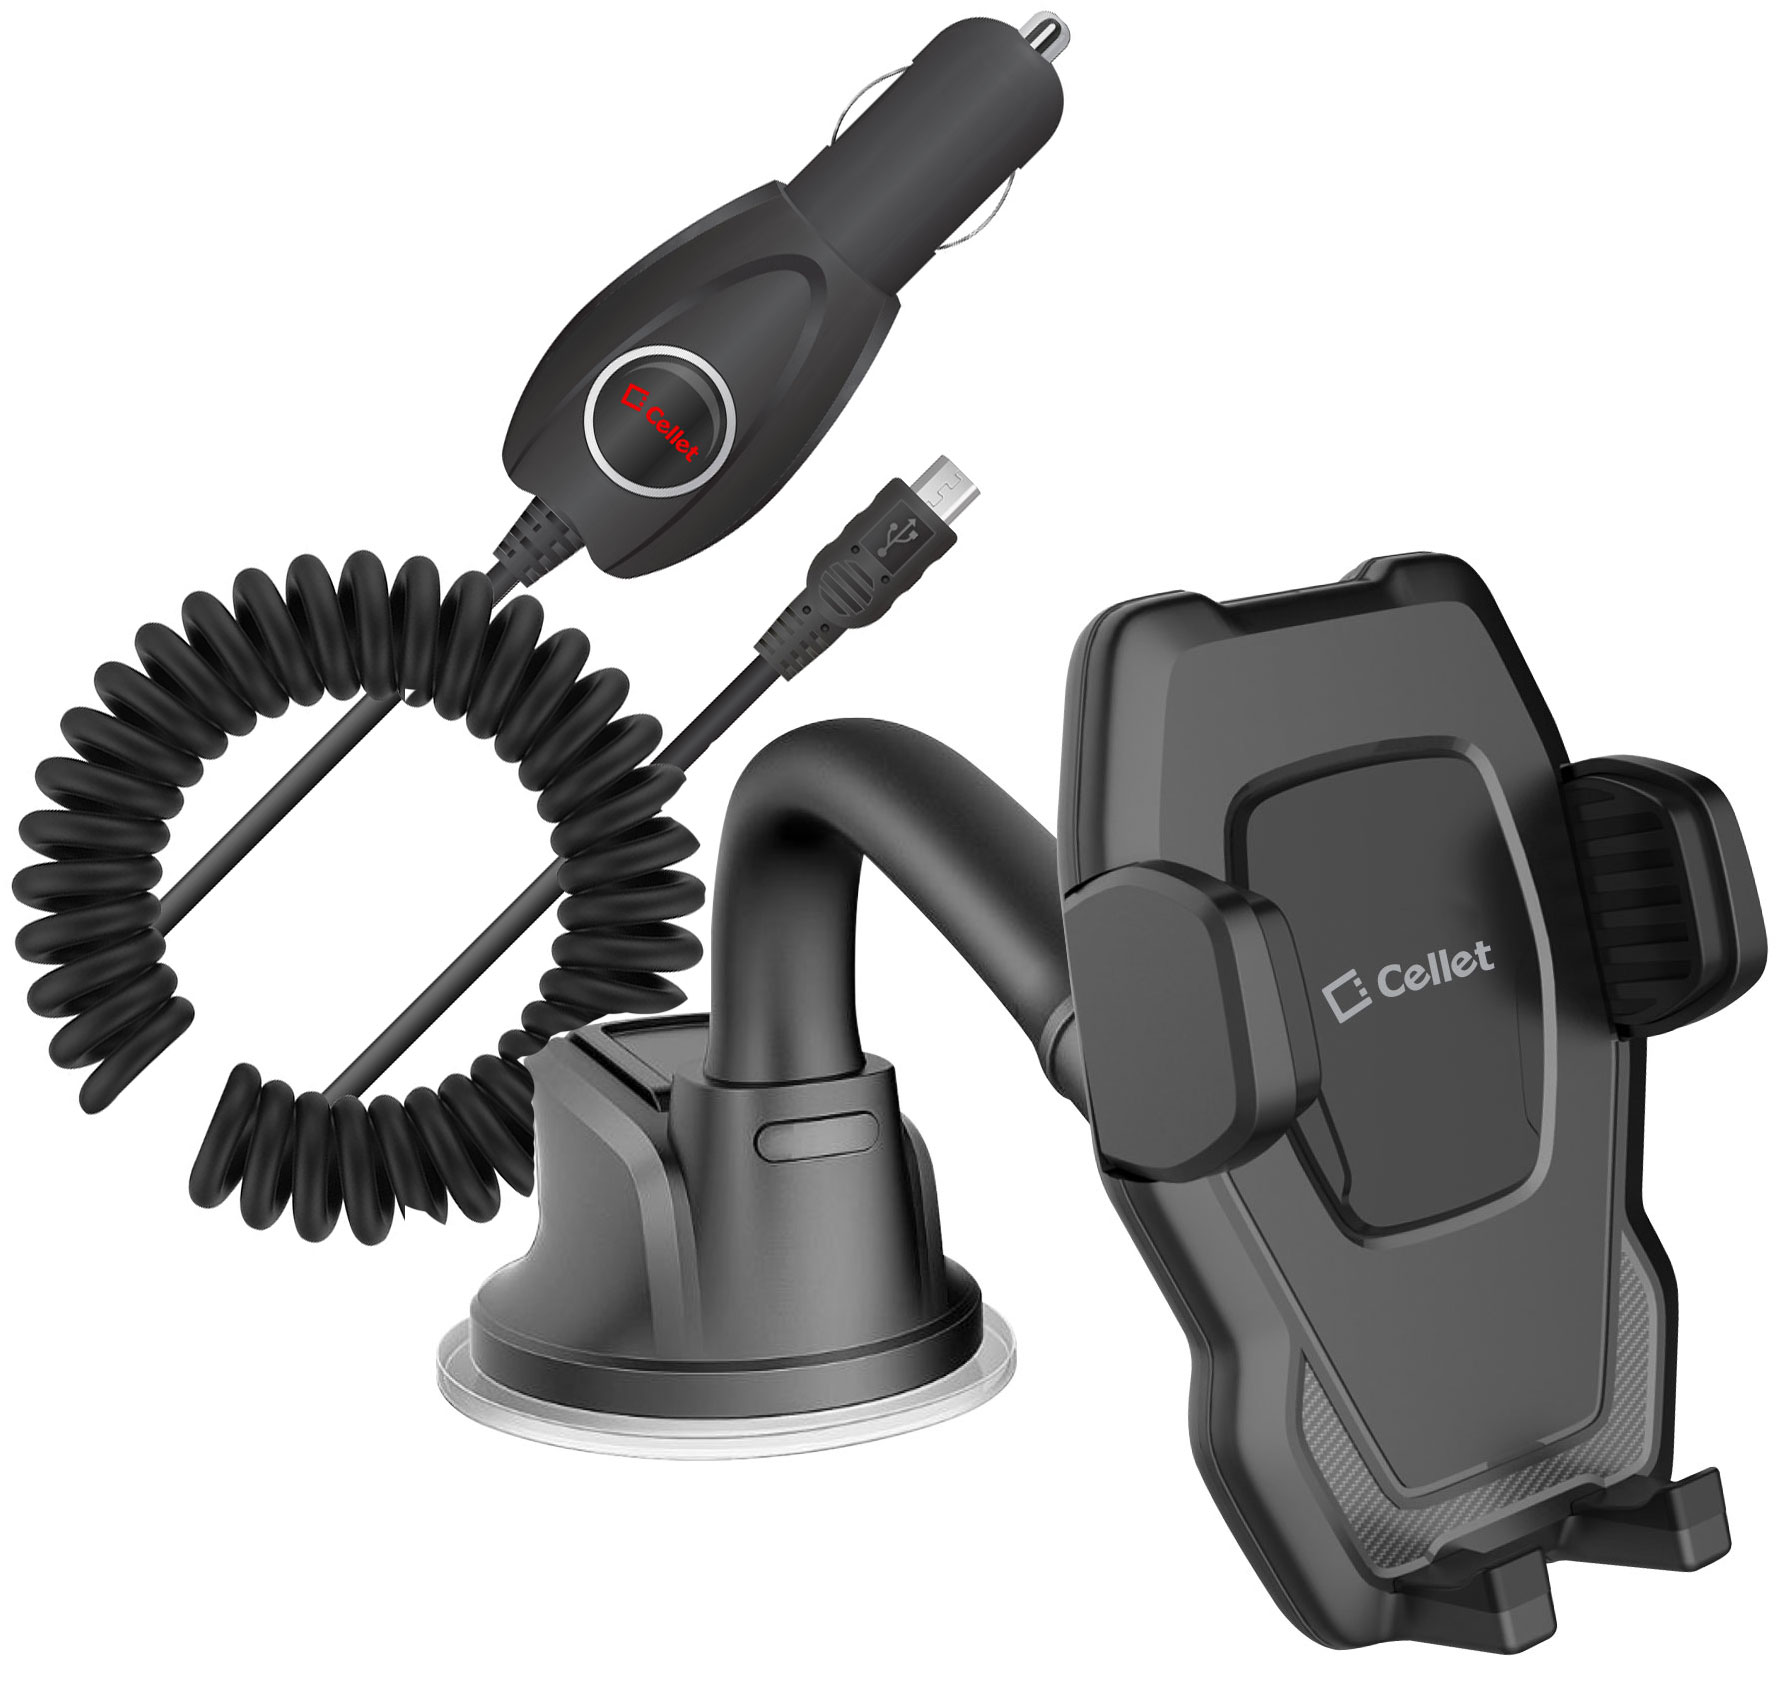 Huawei Honor 6 Plus Windshield Phone Holder Goose Neck Car Charger Black